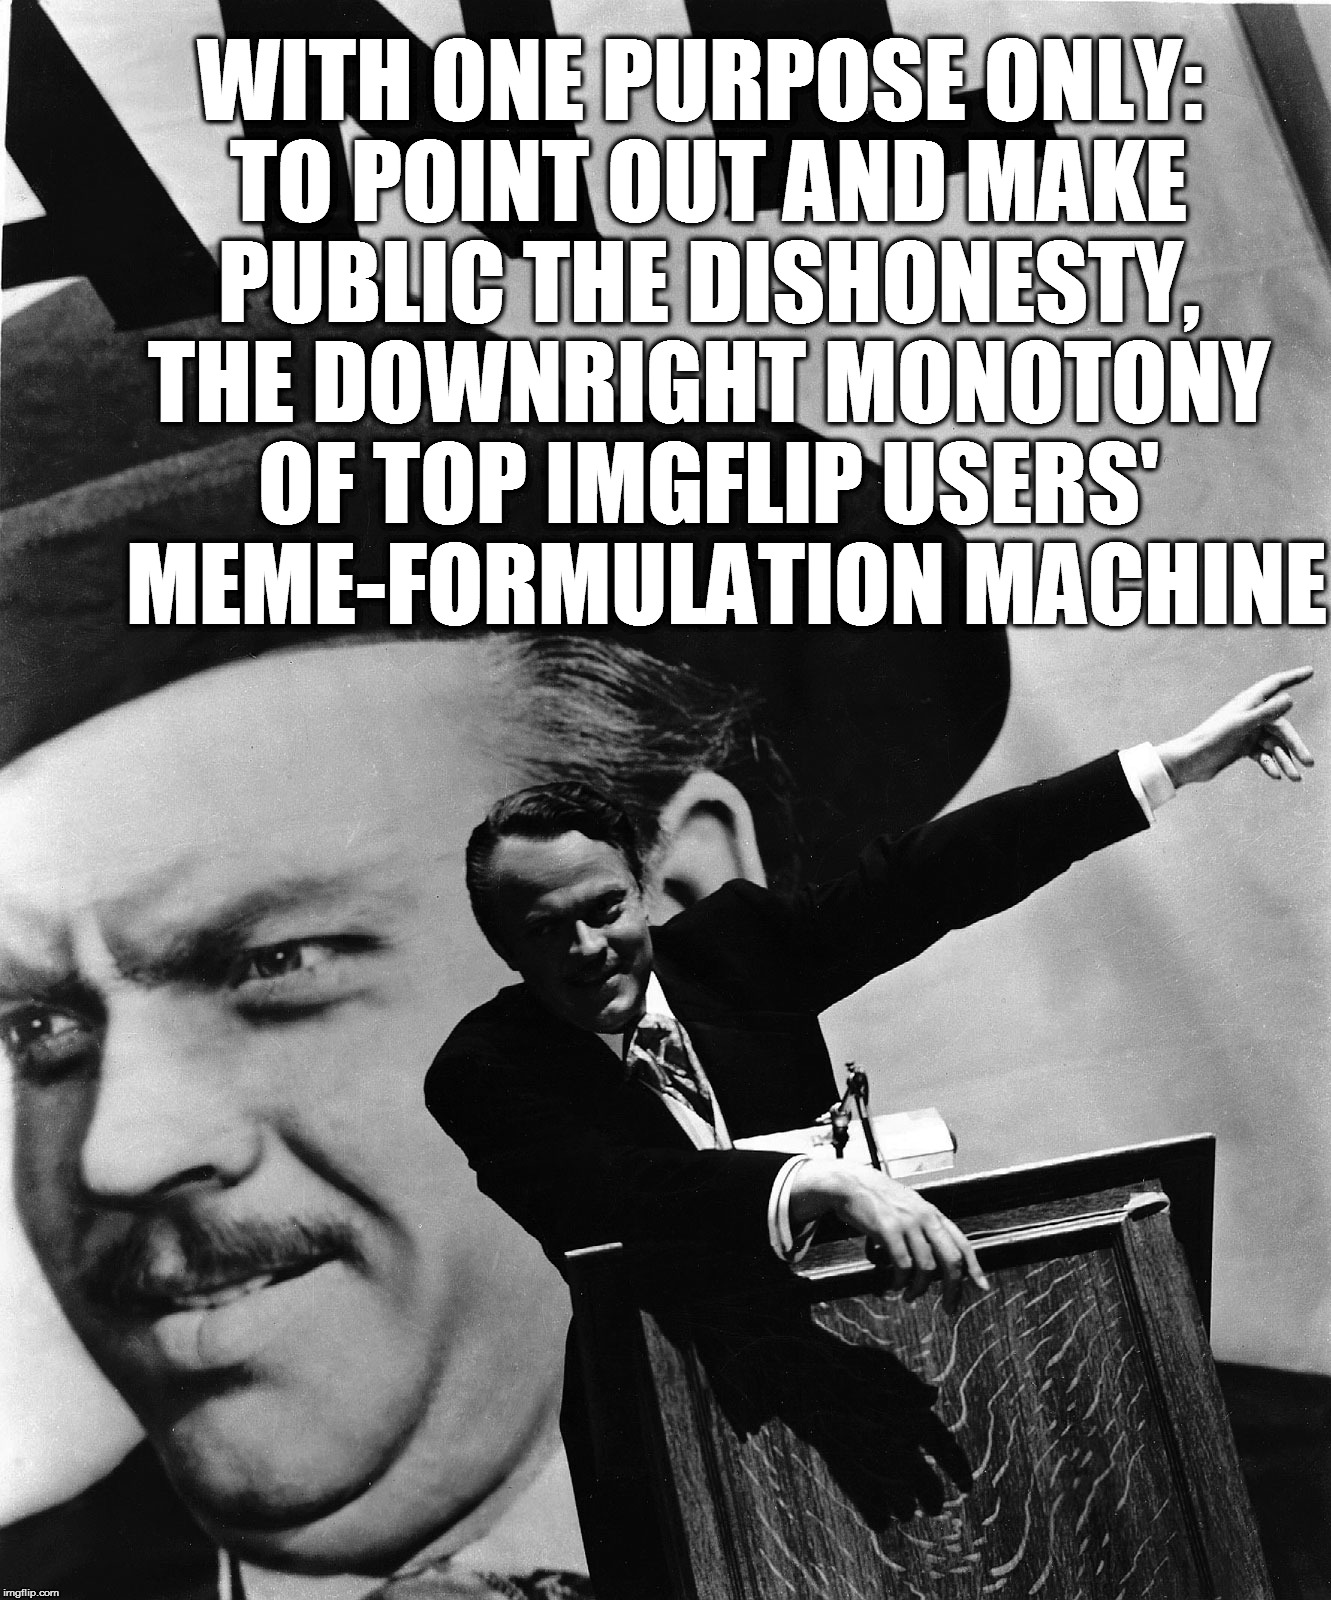 Better Memes, Better World | Manifesto against Imgflip's Major League  | WITH ONE PURPOSE ONLY: TO POINT OUT AND MAKE PUBLIC THE DISHONESTY, THE DOWNRIGHT MONOTONY OF TOP IMGFLIP USERS' MEME-FORMULATION MACHINE | image tagged in memes,citizen kane,dasengel,imgflip,better memes better world,orson welles | made w/ Imgflip meme maker